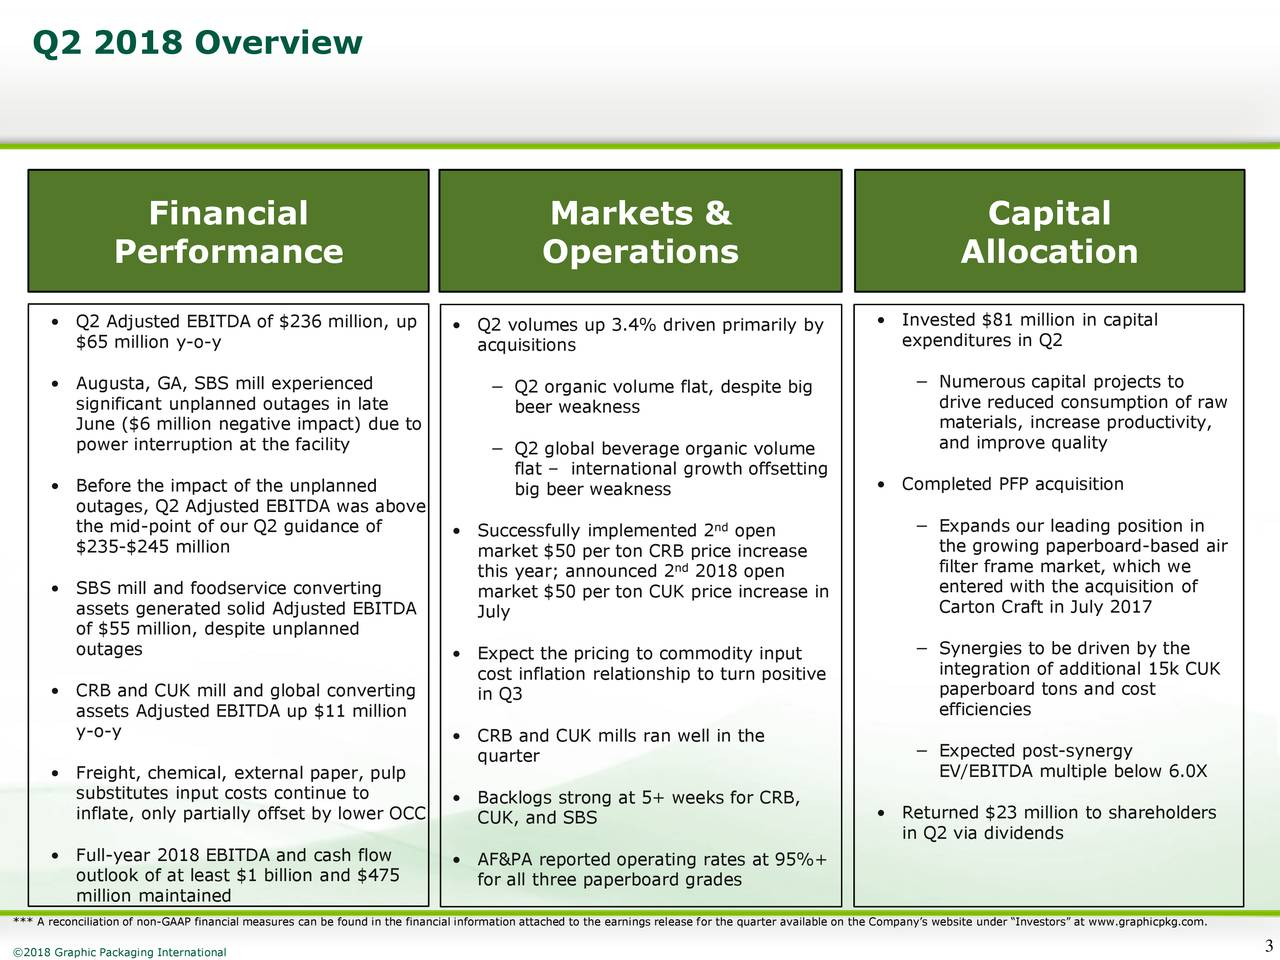 Financial Markets & Capital Performance Operations Allocation • Q2 Adjusted EBITDA of $236 million, up • Q2 volumes up 3.4% driven primarily by • Invested $81 million in capital $65 million y-o-y acquisitions expenditures in Q2 • Augusta, GA, SBS mill experienced − Q2 organic volume flat, despite big − Numerous capital projects to significant unplanned outages in late beer weakness drive reduced consumption of raw June ($6 million negative impact) due to materials, increase productivity, power interruption at the facility and improve quality − Q2 global beverage organic volume flat – international growth offsetting • Before the impact of the unplanned big beer weakness • Completed PFP acquisition outages, Q2 Adjusted EBITDA was above the mid-point of our Q2 guidance of • Successfully implemented 2ndopen − Expands our leading position in $235-$245 million market $50 per ton CRB price increase the growing paperboard-based air nd filter frame market, which we this year; announced 2 2018 open • SBS mill and foodservice converting market $50 per ton CUK price increase in entered with the acquisition of assets generated solid Adjusted EBITDA July Carton Craft in July 2017 of $55 million, despite unplanned outages • Expect the pricing to commodity input − Synergies to be driven by the integration of additional 15k CUK cost inflation relationship to turn positive • CRB and CUK mill and global converting in Q3 paperboard tons and cost assets Adjusted EBITDA up $11 million efficiencies y-o-y • CRB and CUK mills ran well in the quarter − Expected post-synergy • Freight, chemical, external paper, pulp EV/EBITDA multiple below 6.0X substitutes input costs continue to • Backlogs strong at 5+ weeks for CRB, inflate, only partially offset by lower OCC CUK, and SBS • Returned $23 million to shareholders in Q2 via dividends • Full-year 2018 EBITDA and cash flow • AF&PA reported operating rates at 95%+ outlook of at least $1 billion and $475 for all three paperboard grades million mai